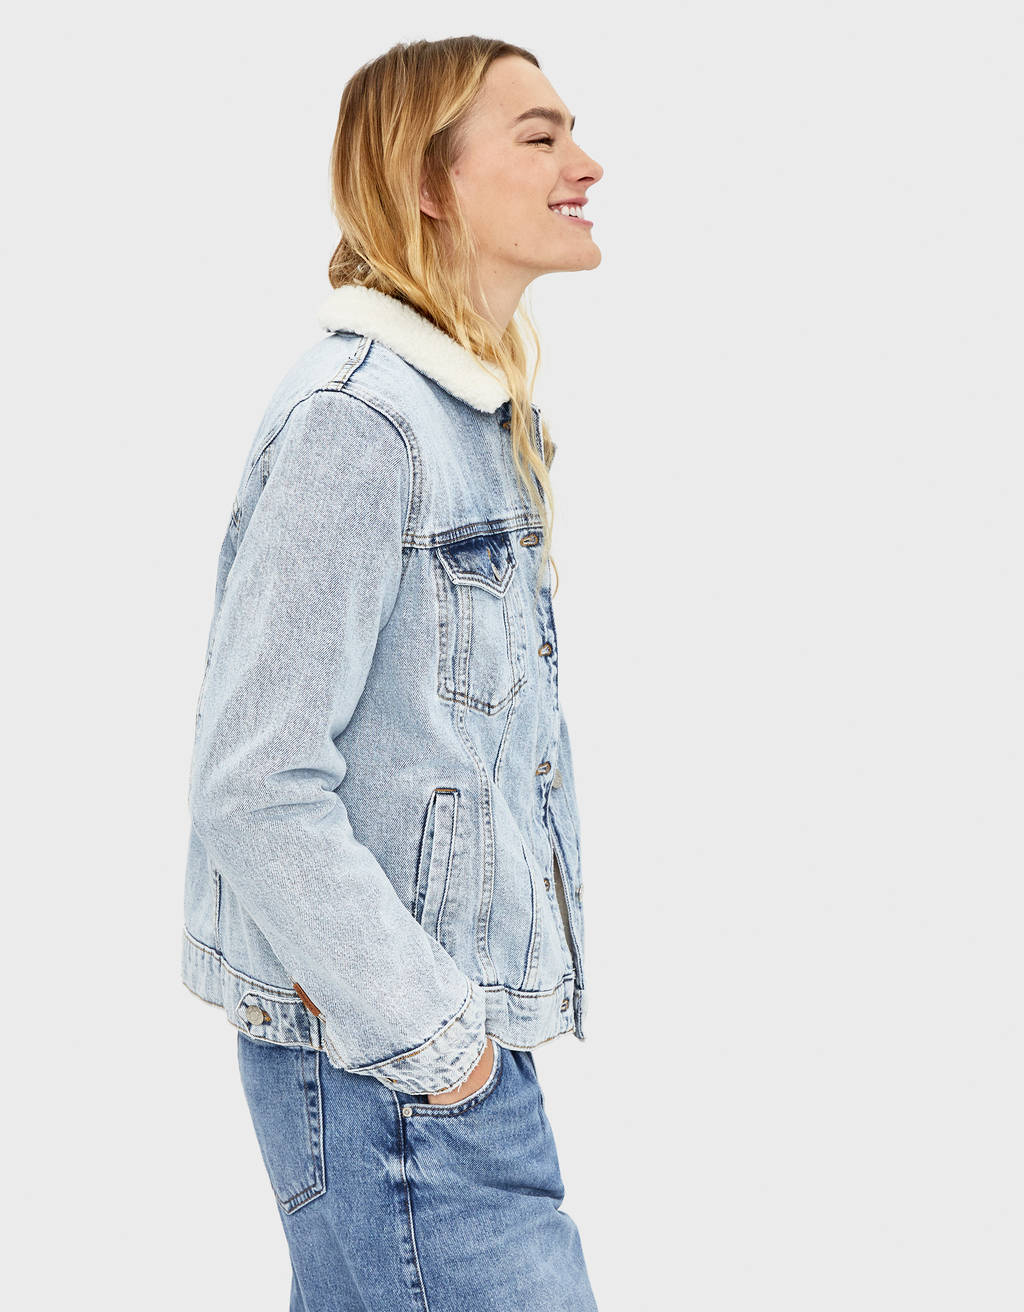 Cazadora denim con borreguillo